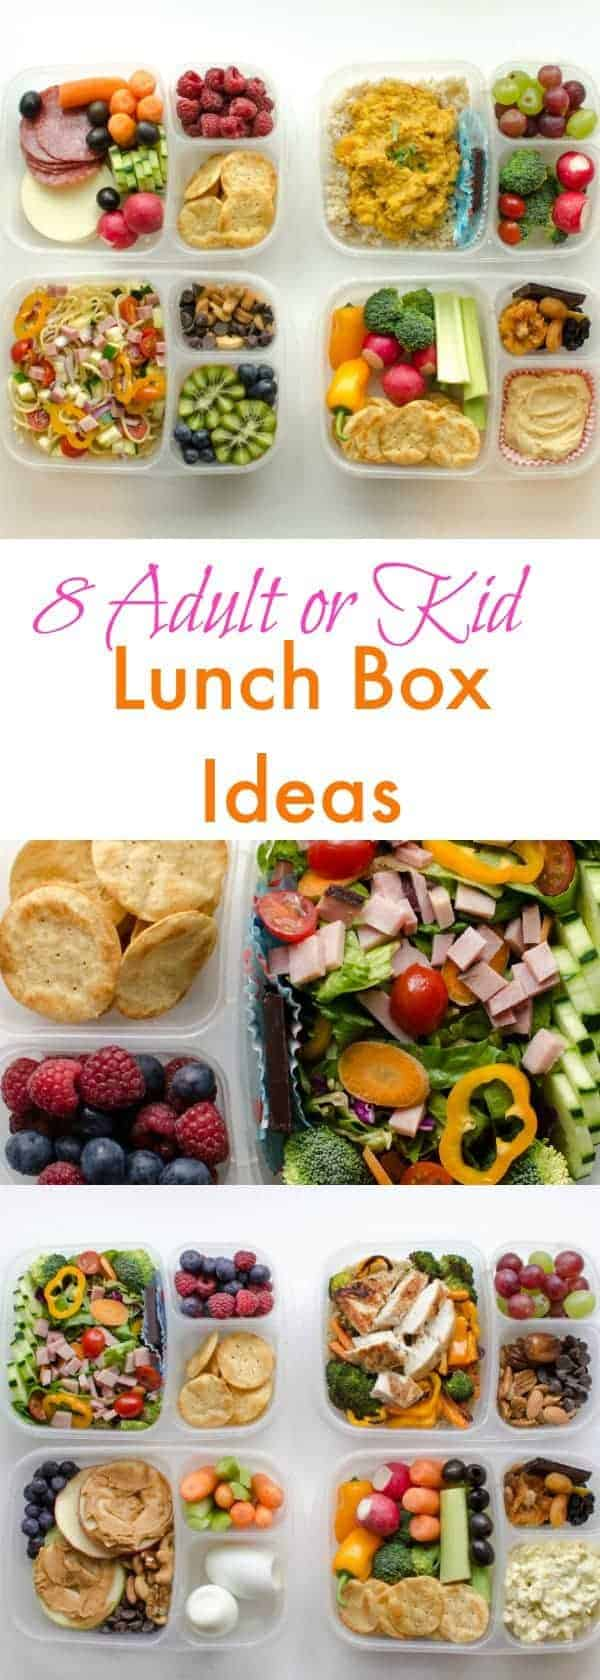 Looking for easy & healthy adult lunch ideas? These wholesome lunches are perfect for work and busy days on the go. Delicious, real food in a hurry! #worklunch #grownuplunches #adultlunch